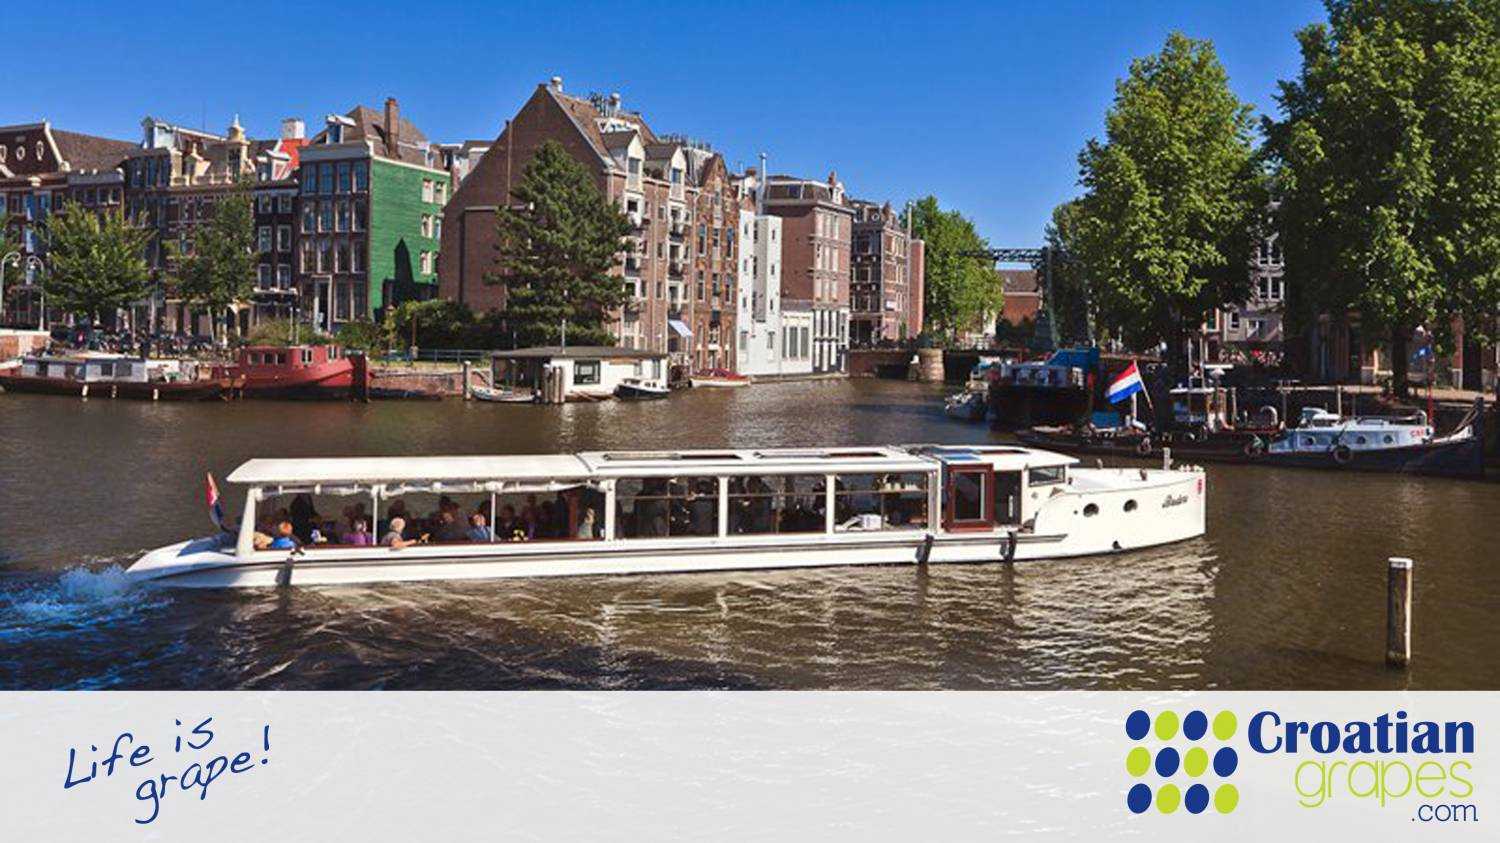 Pers Event Amsterdam